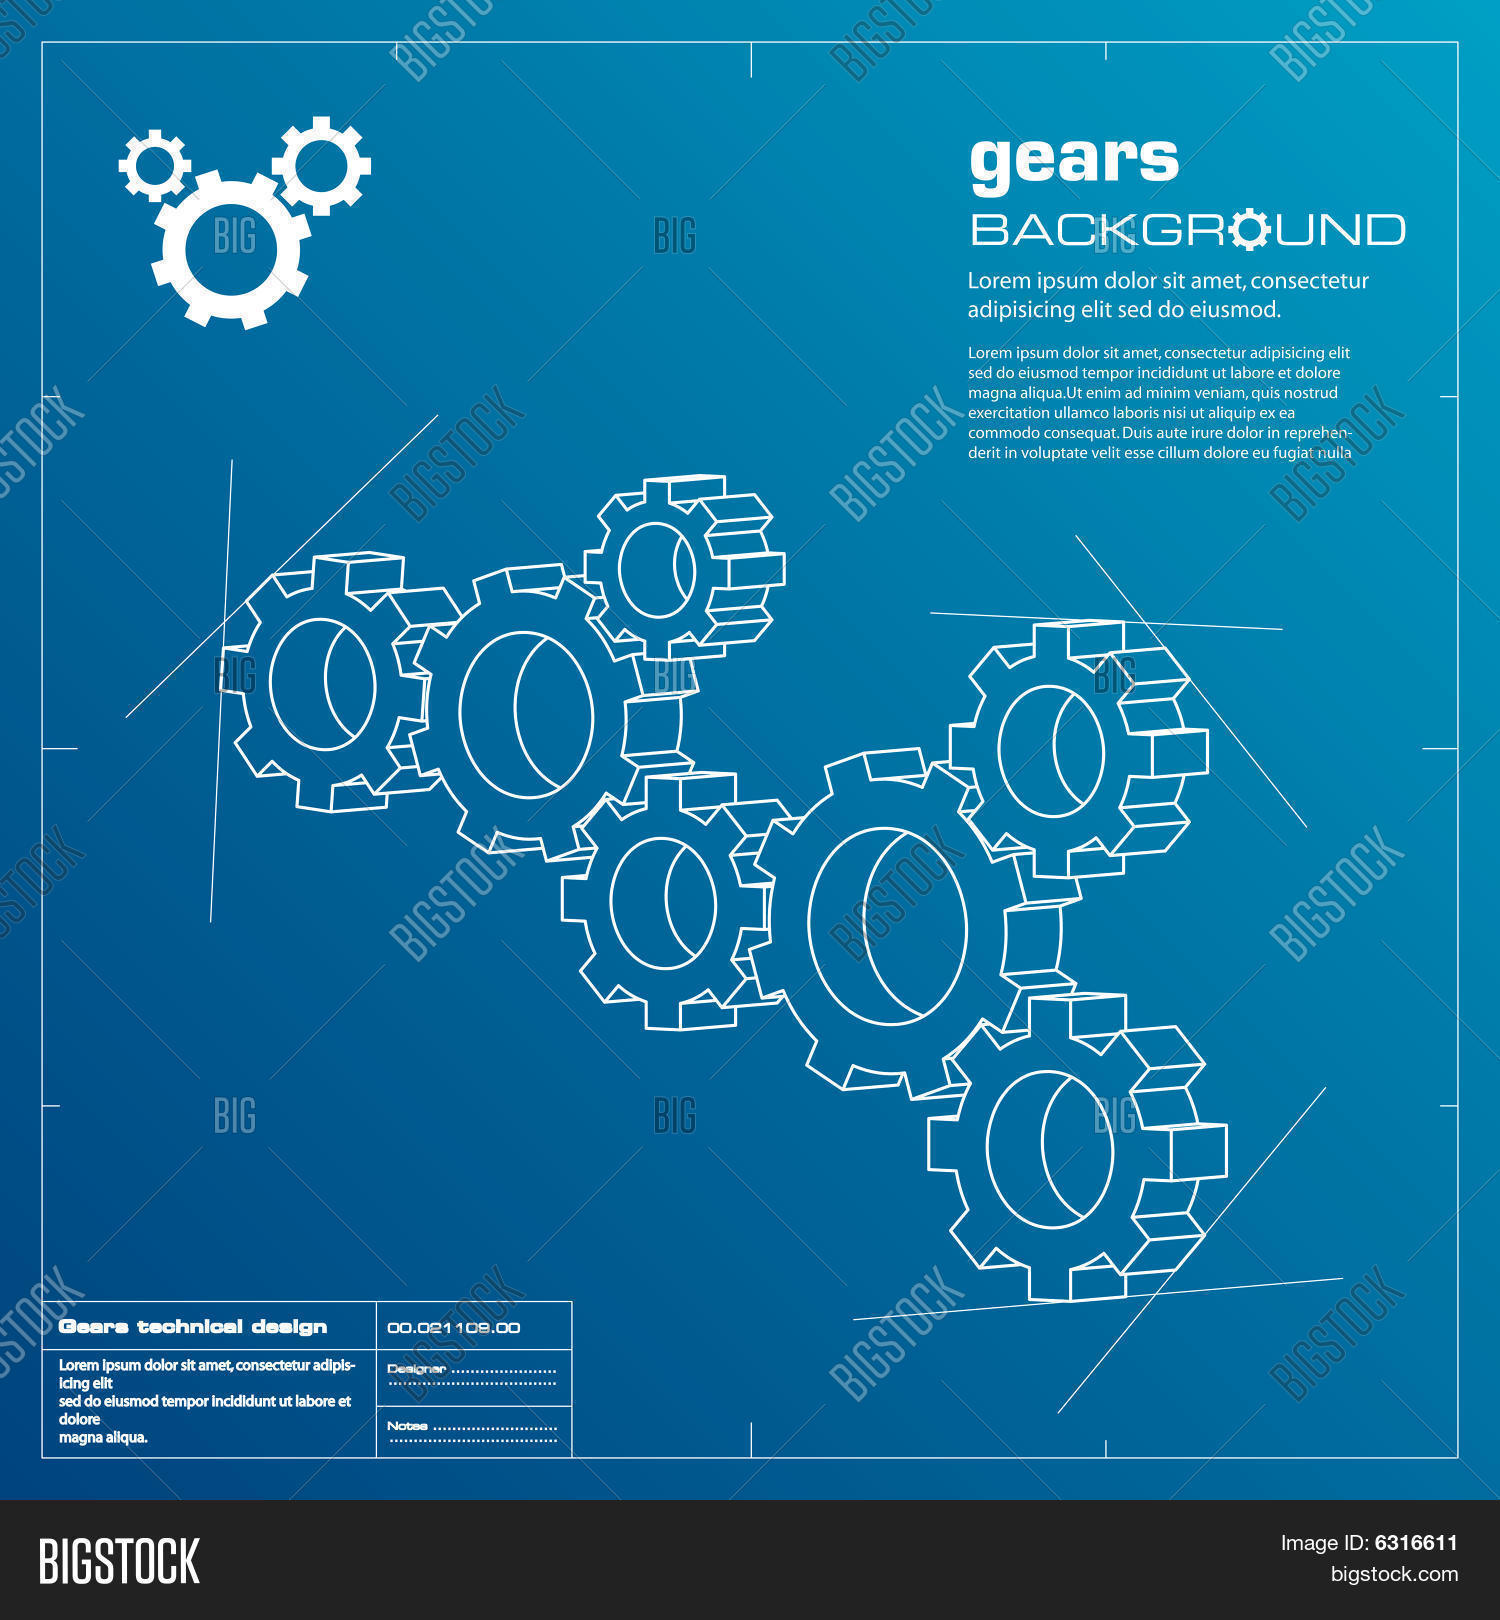 Gears blueprint vector photo free trial bigstock gears blueprint background vector malvernweather Images